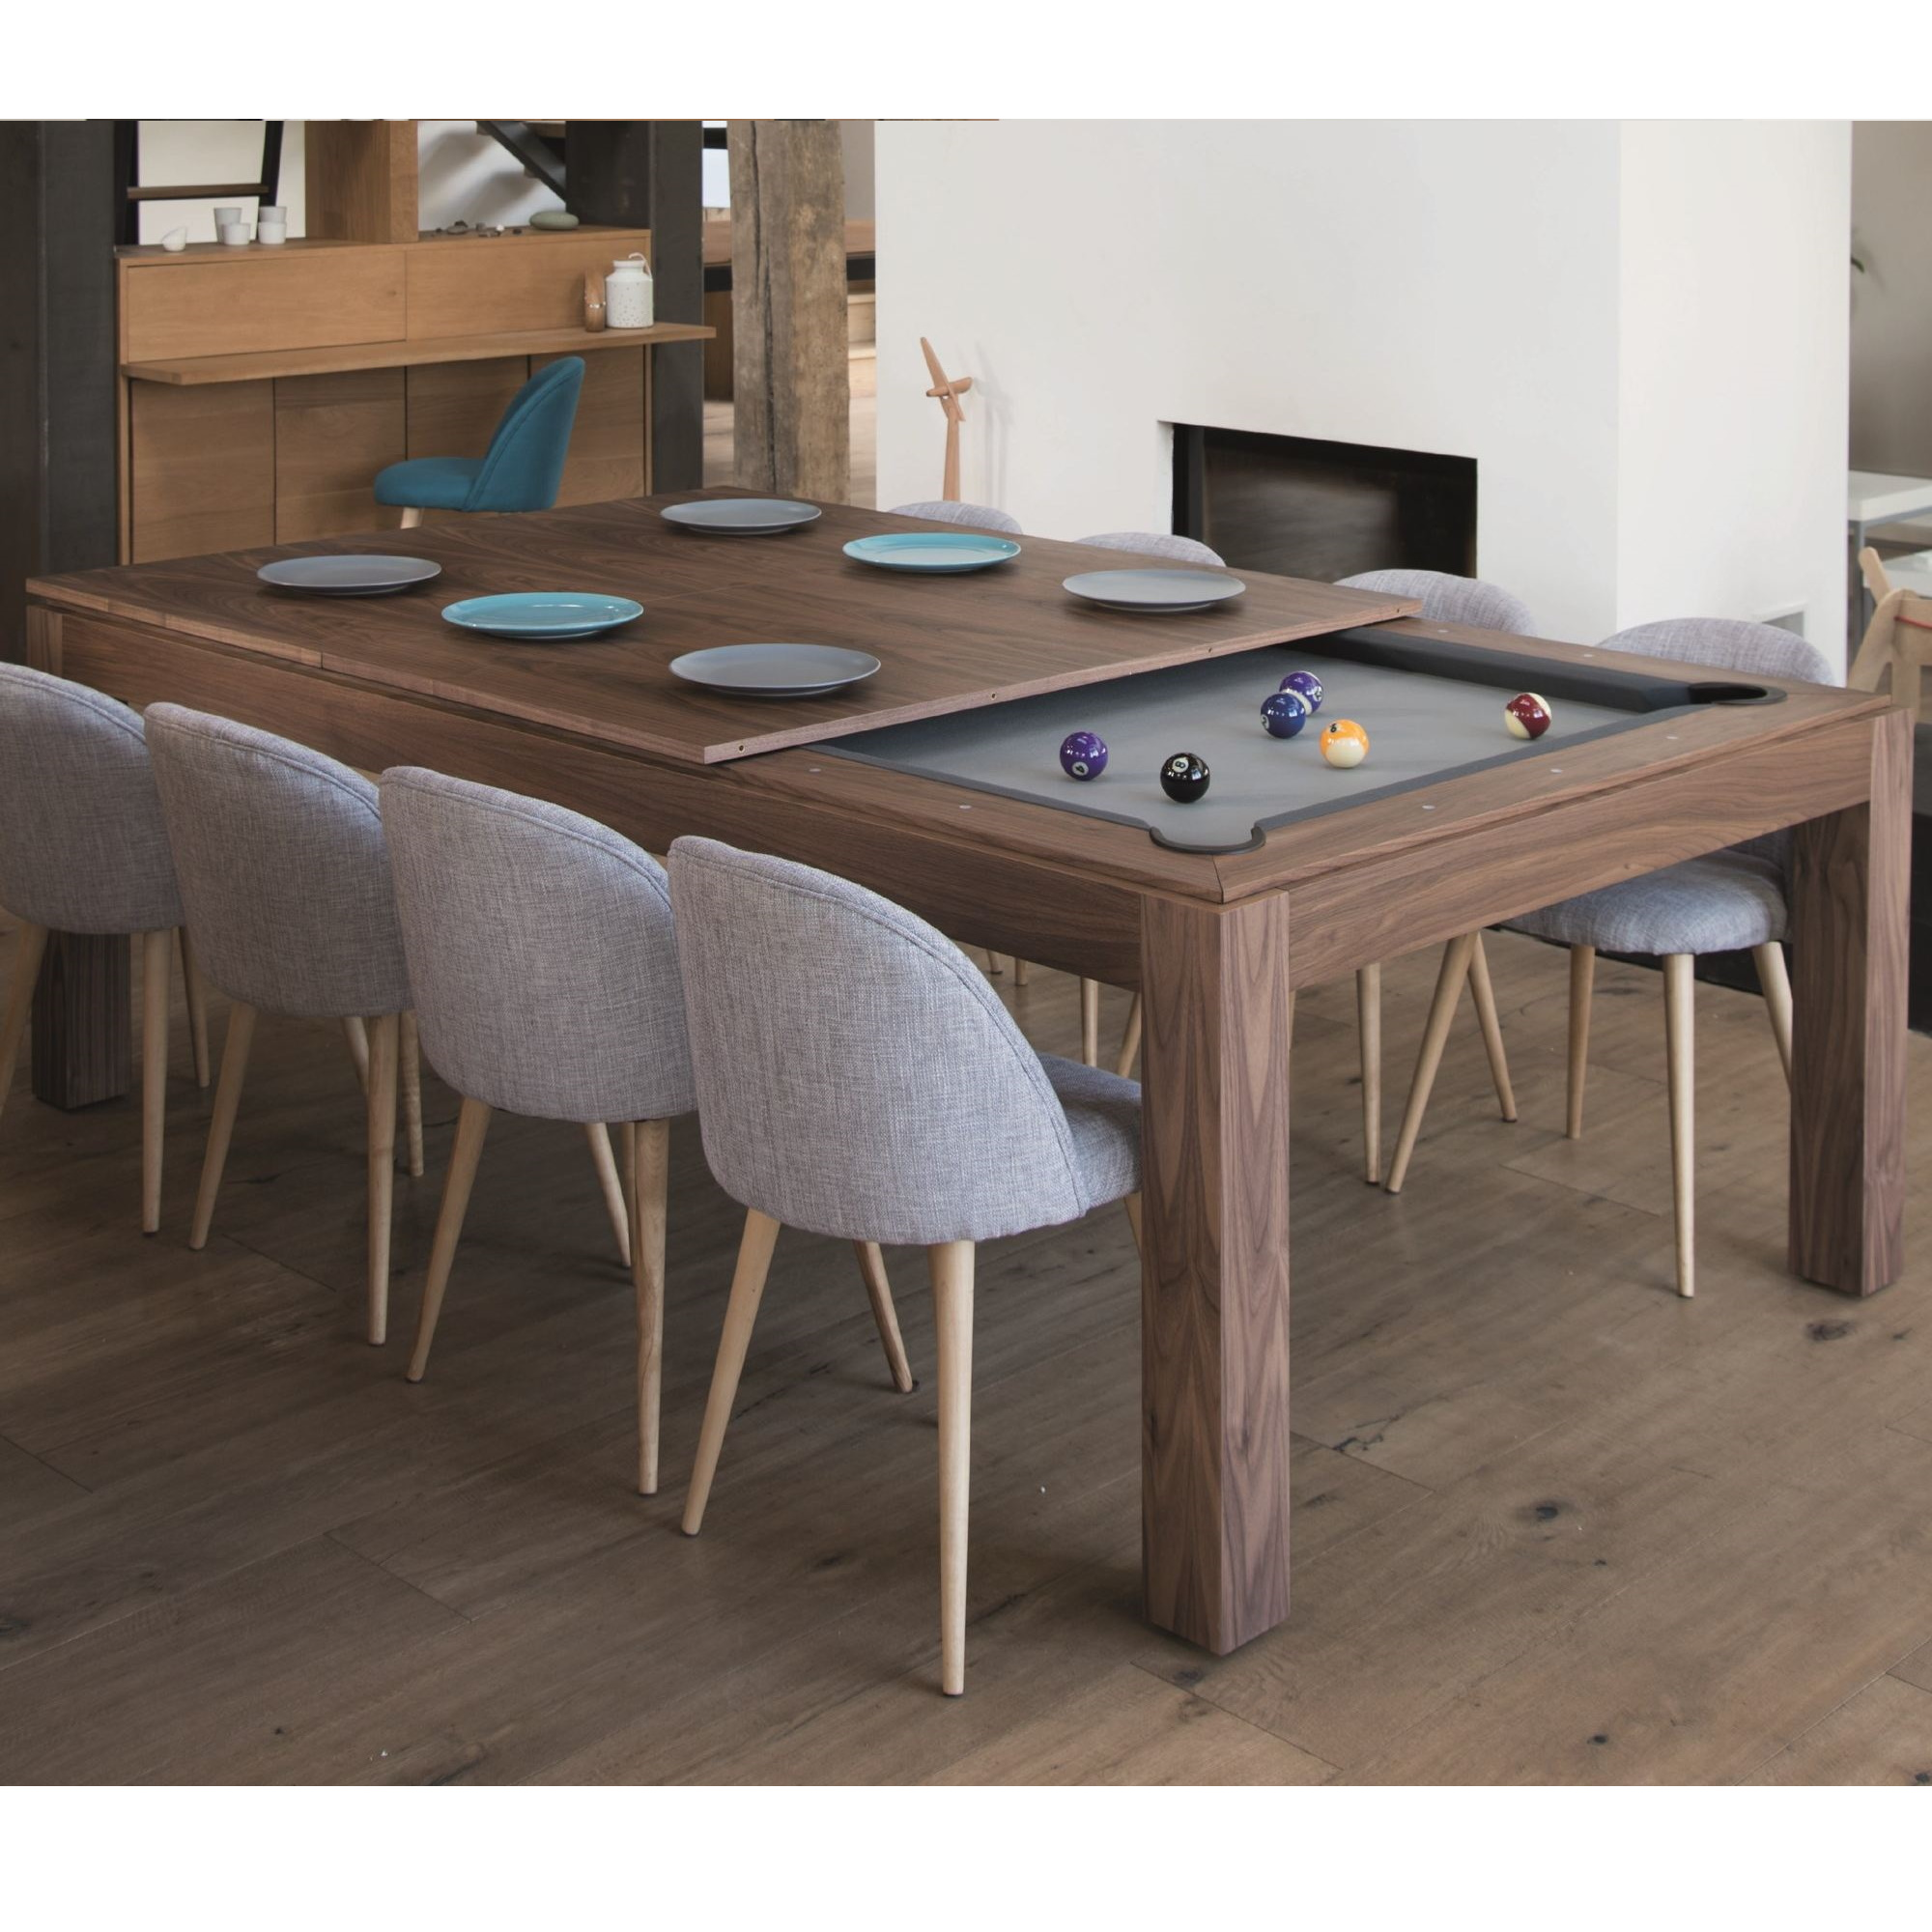 wood line fusion hand crafted dining poo table  ars billiards